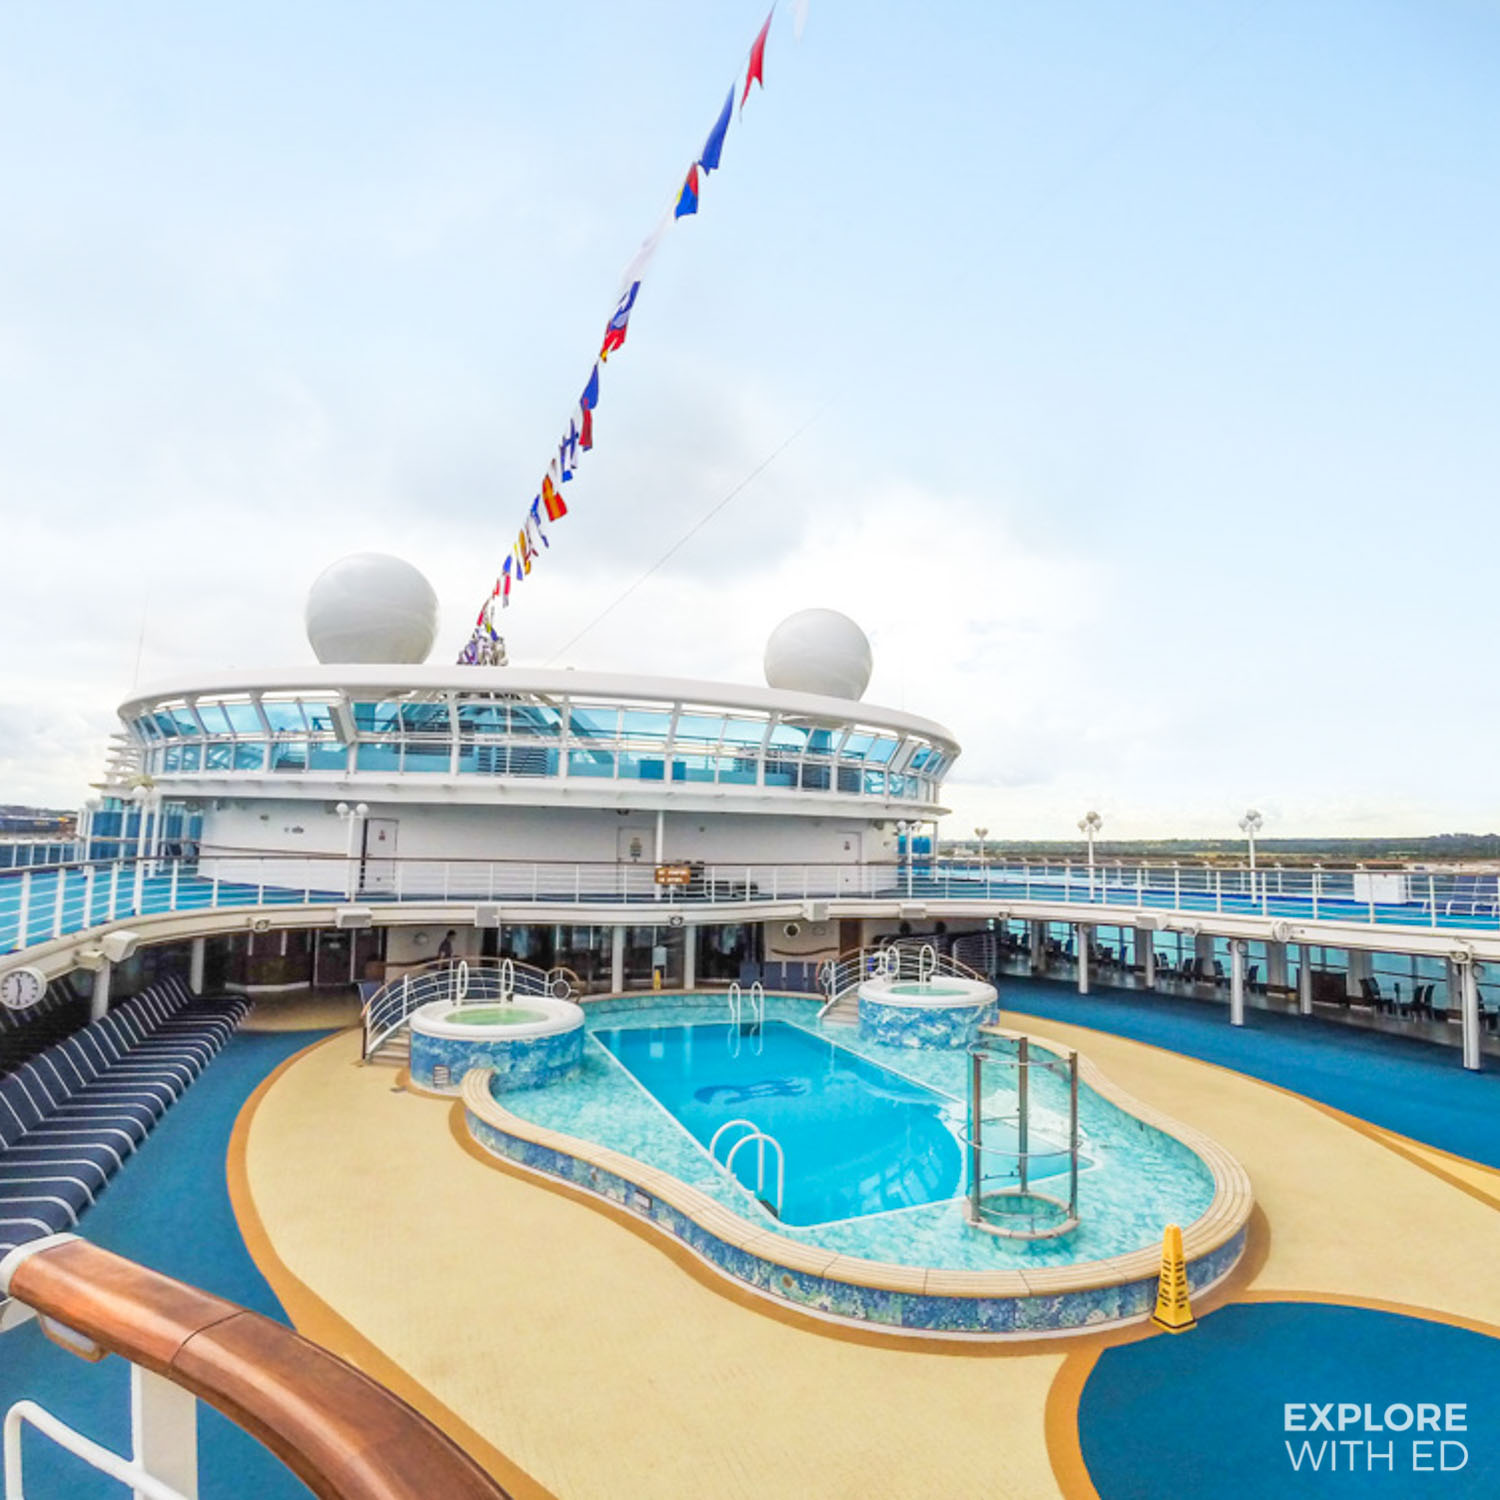 Princess Cruises pool area